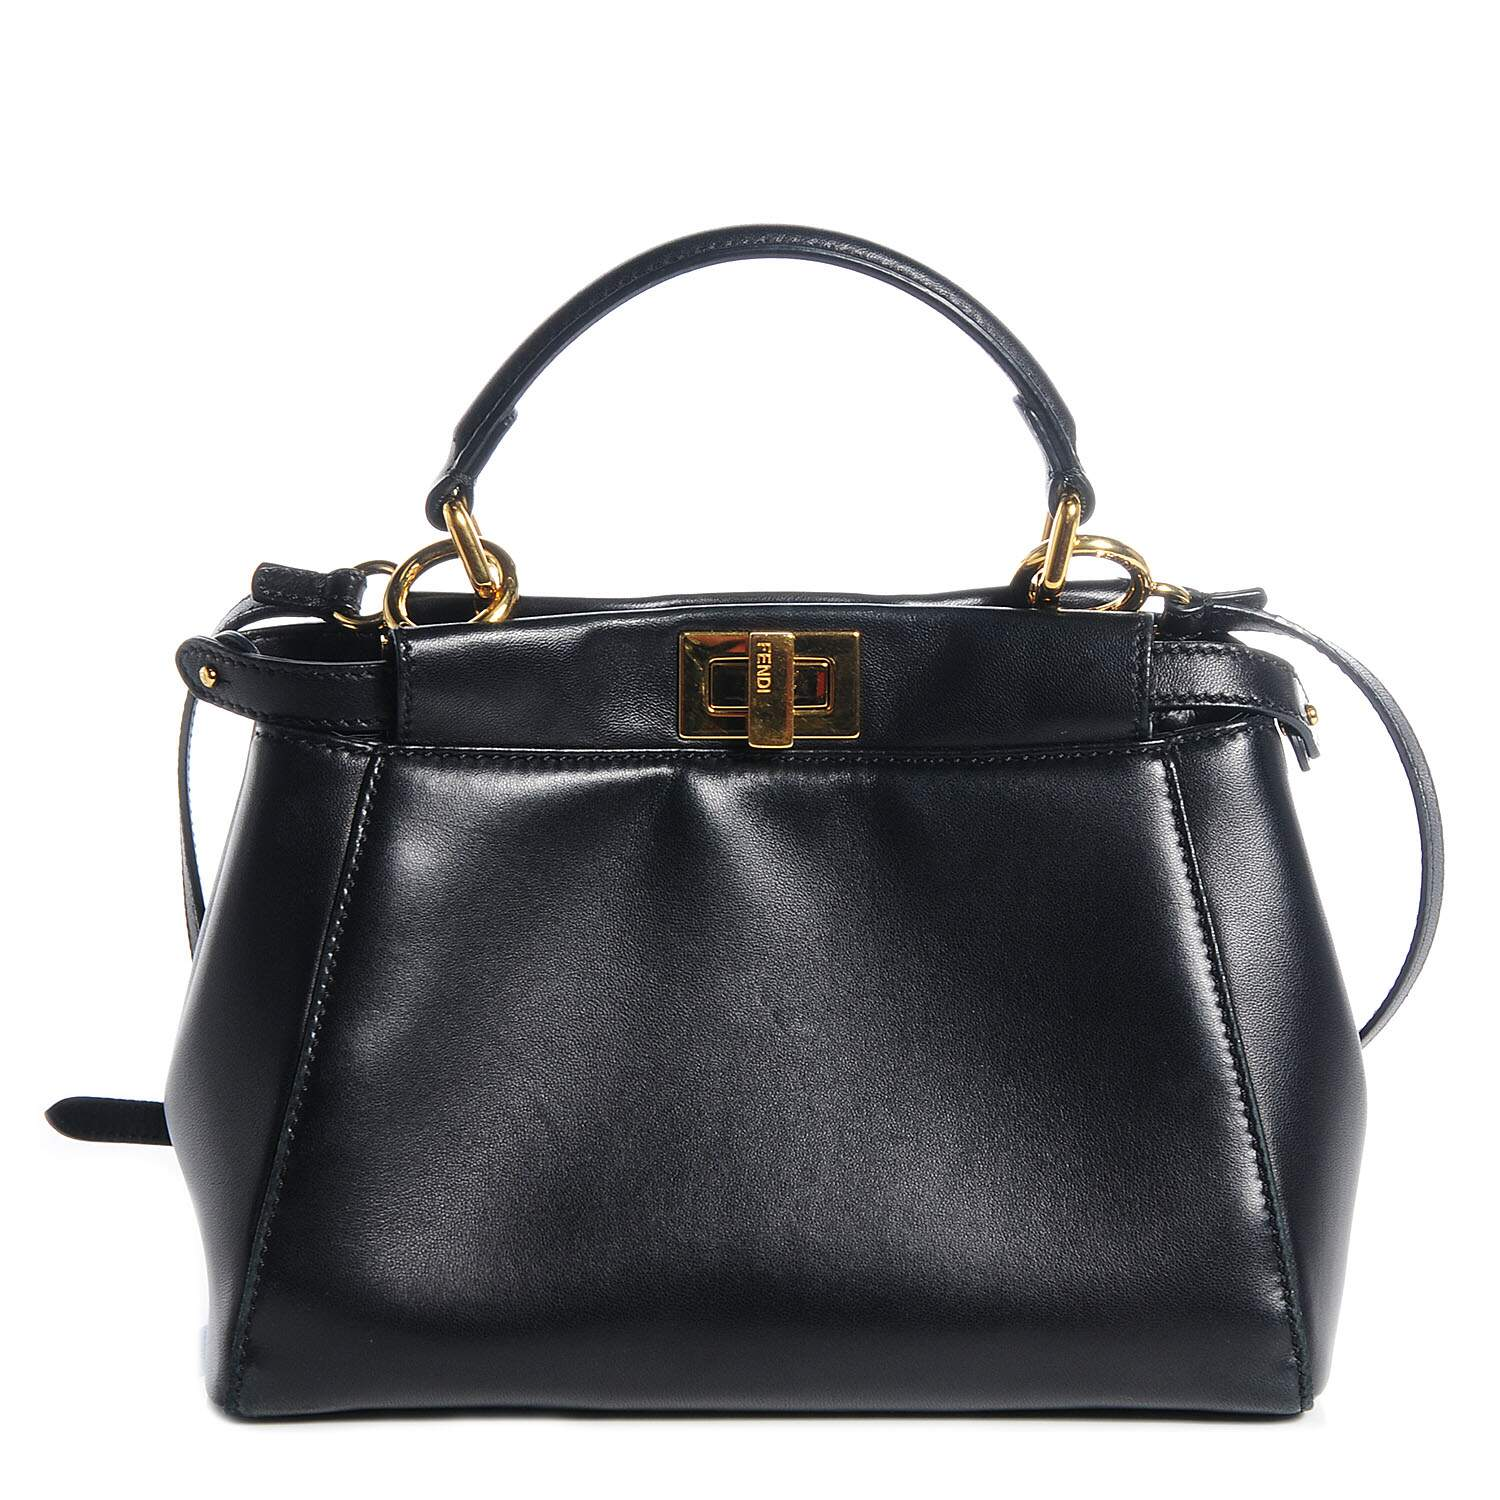 Bolsa Fend Mini Peekaboo Black Leather